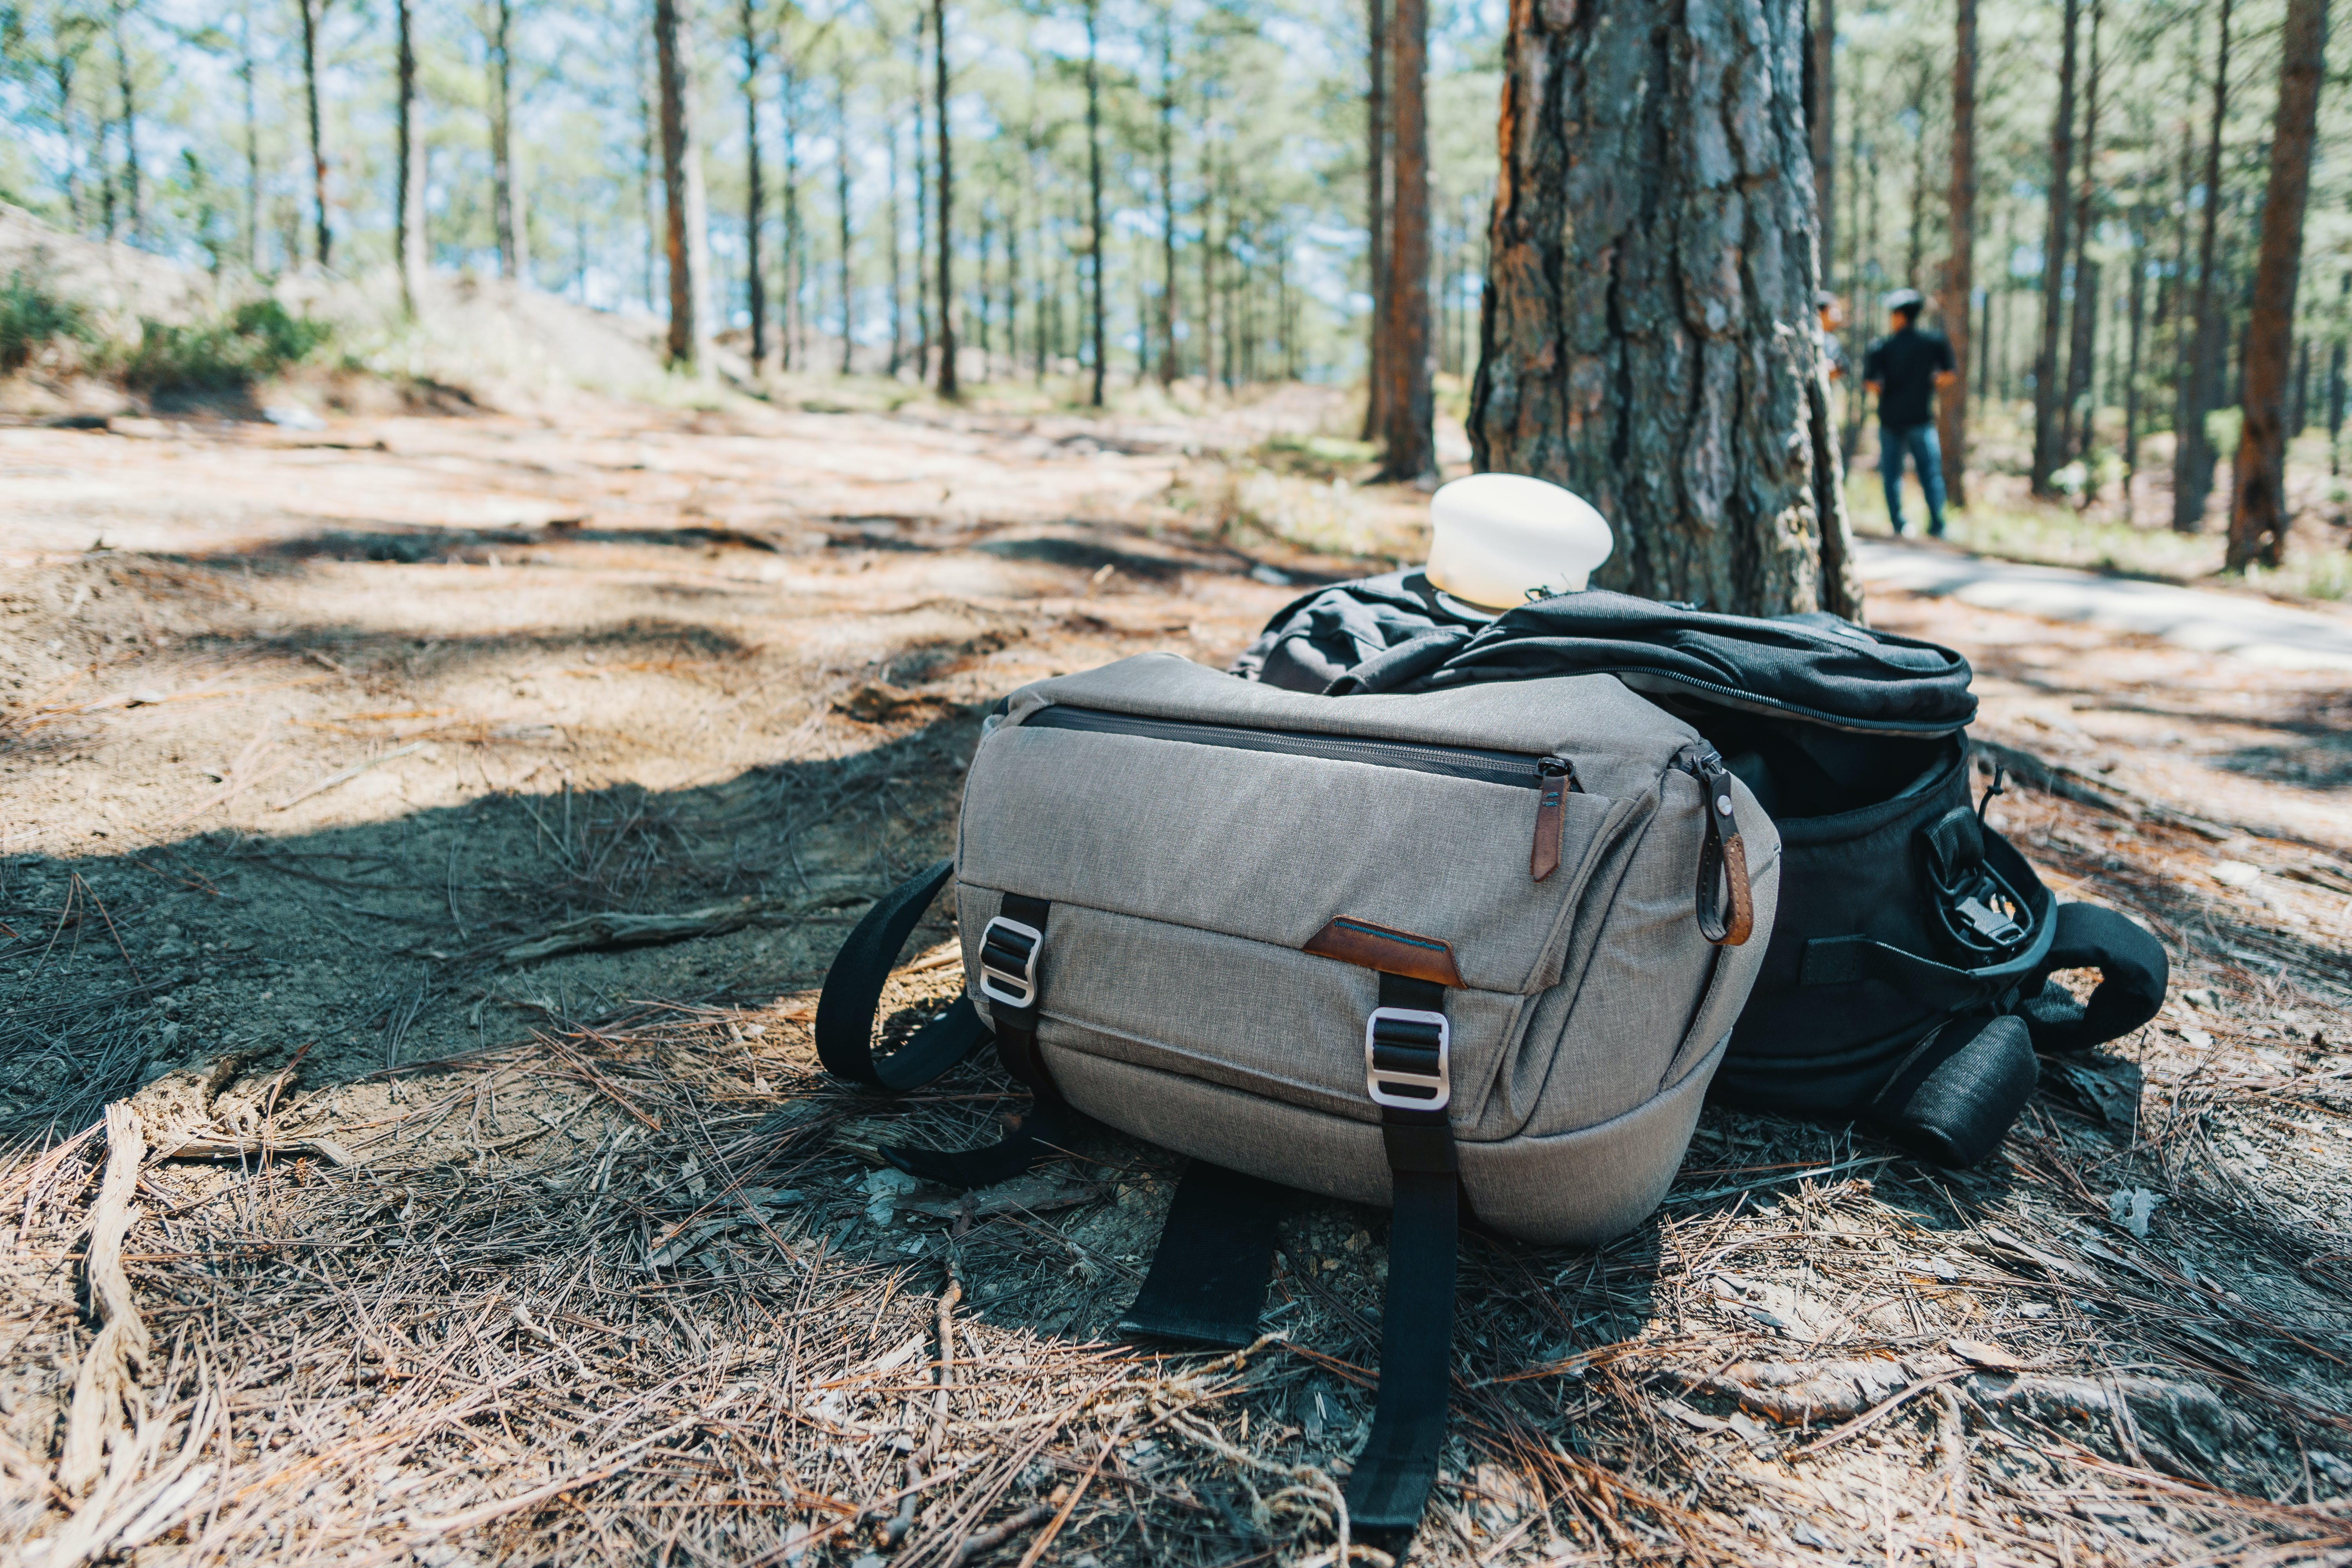 Photograph of Two Duffel Bags Under the Tree in Forest